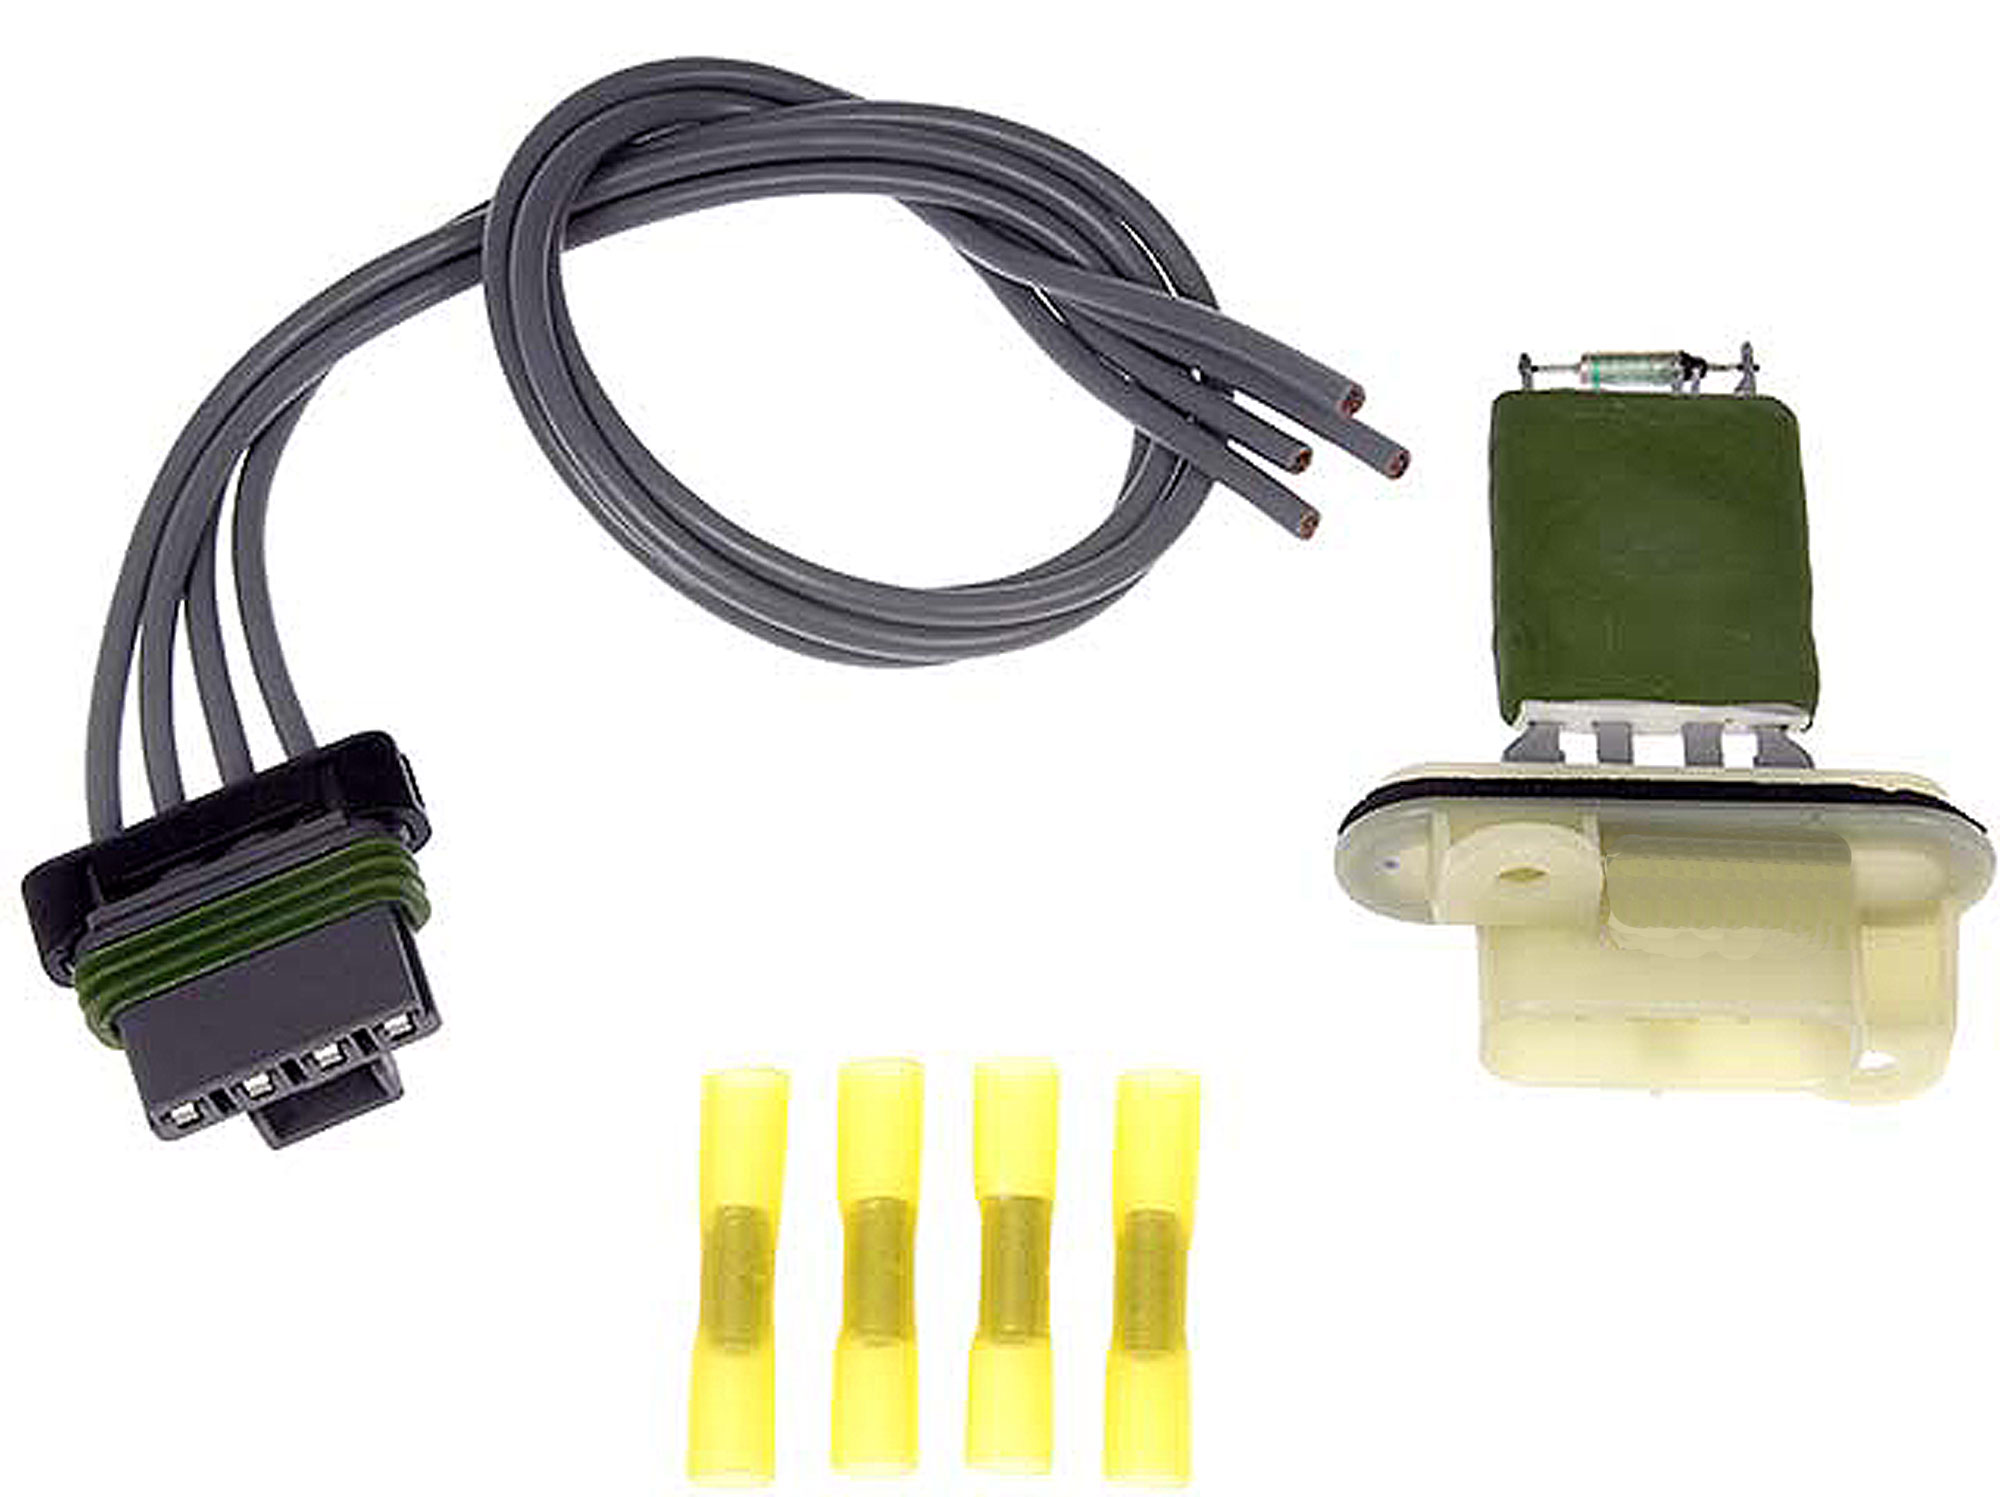 Brand New Blower Motor Switch Resistor Kit w/ Wiring Harness Pigtail  Connector Fits 2004-2008 Chevrolet Colorado Fits 2003-2006 Chevrolet SSR